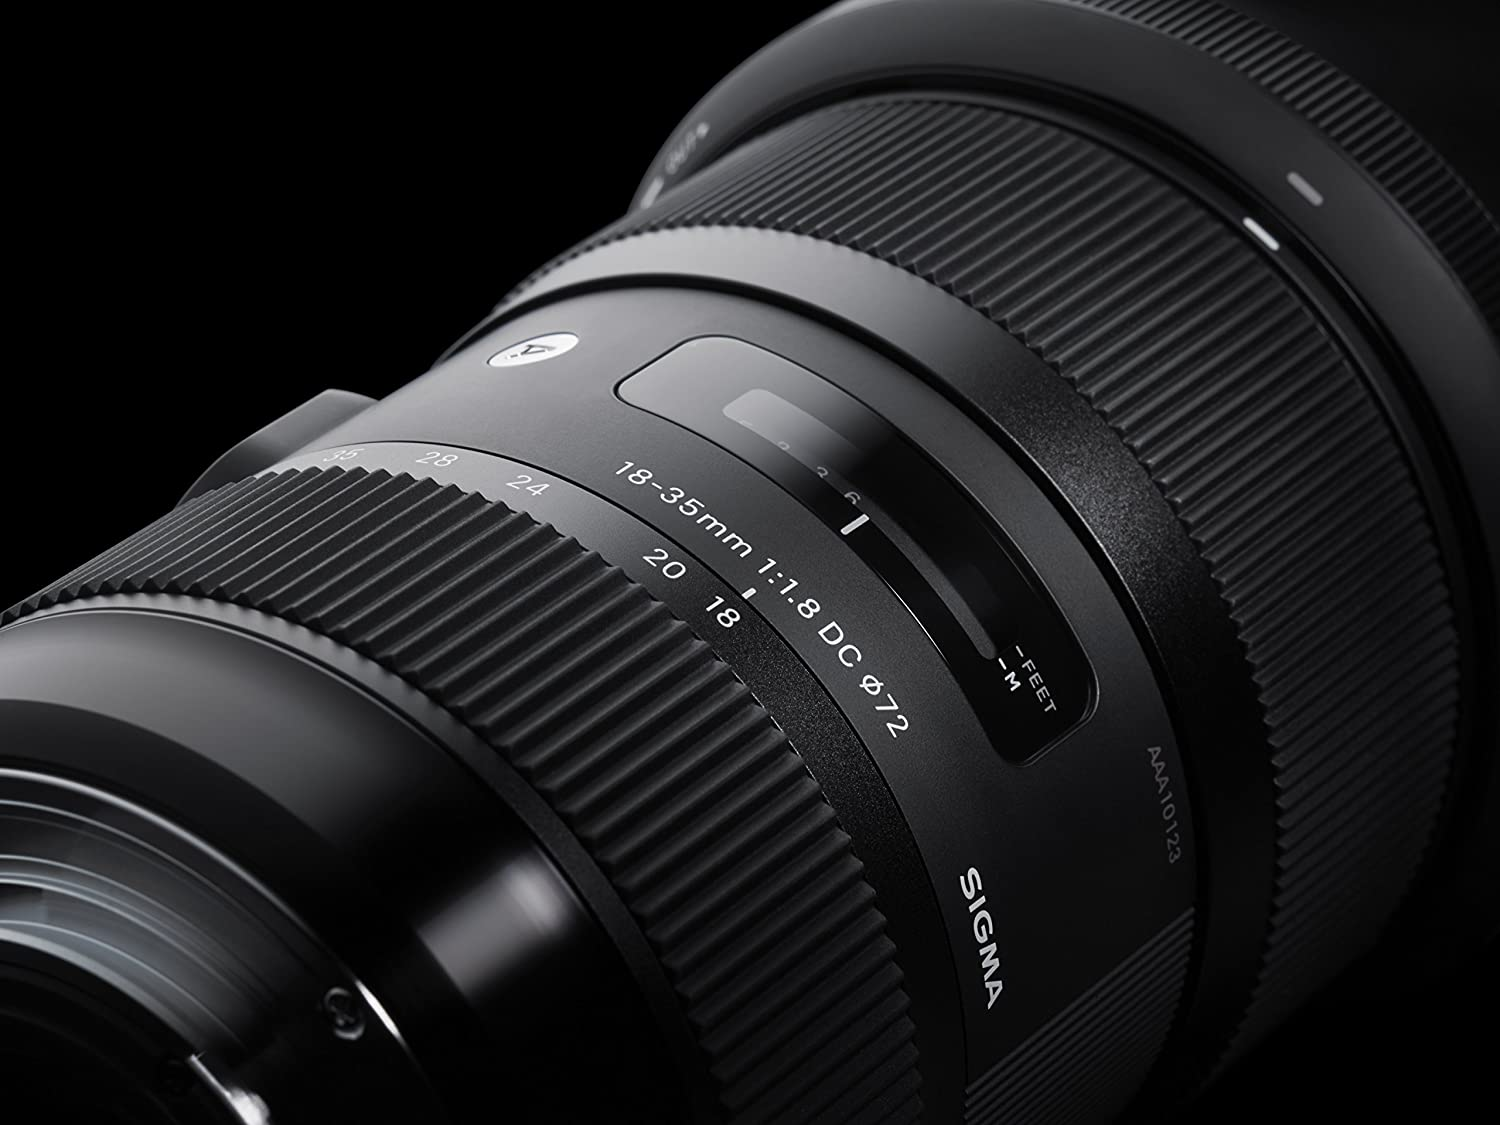 Amazon.com : Sigma 18-35mm F1.8 Art DC HSM Lens for Nikon : Camera on